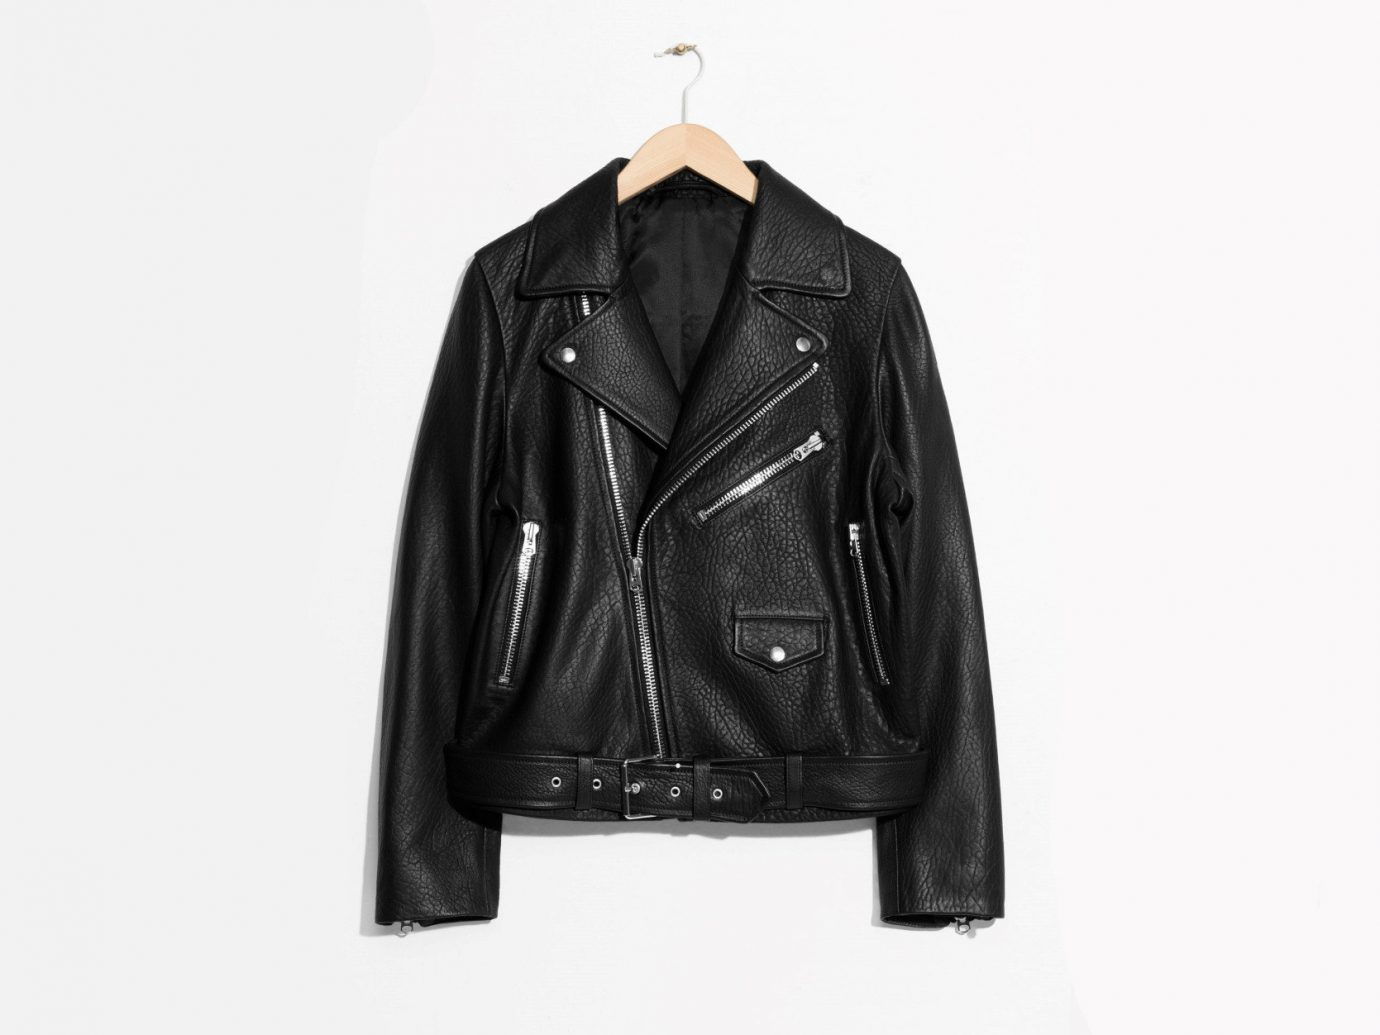 France Style + Design Travel Shop jacket clothing suit leather jacket leather coat product